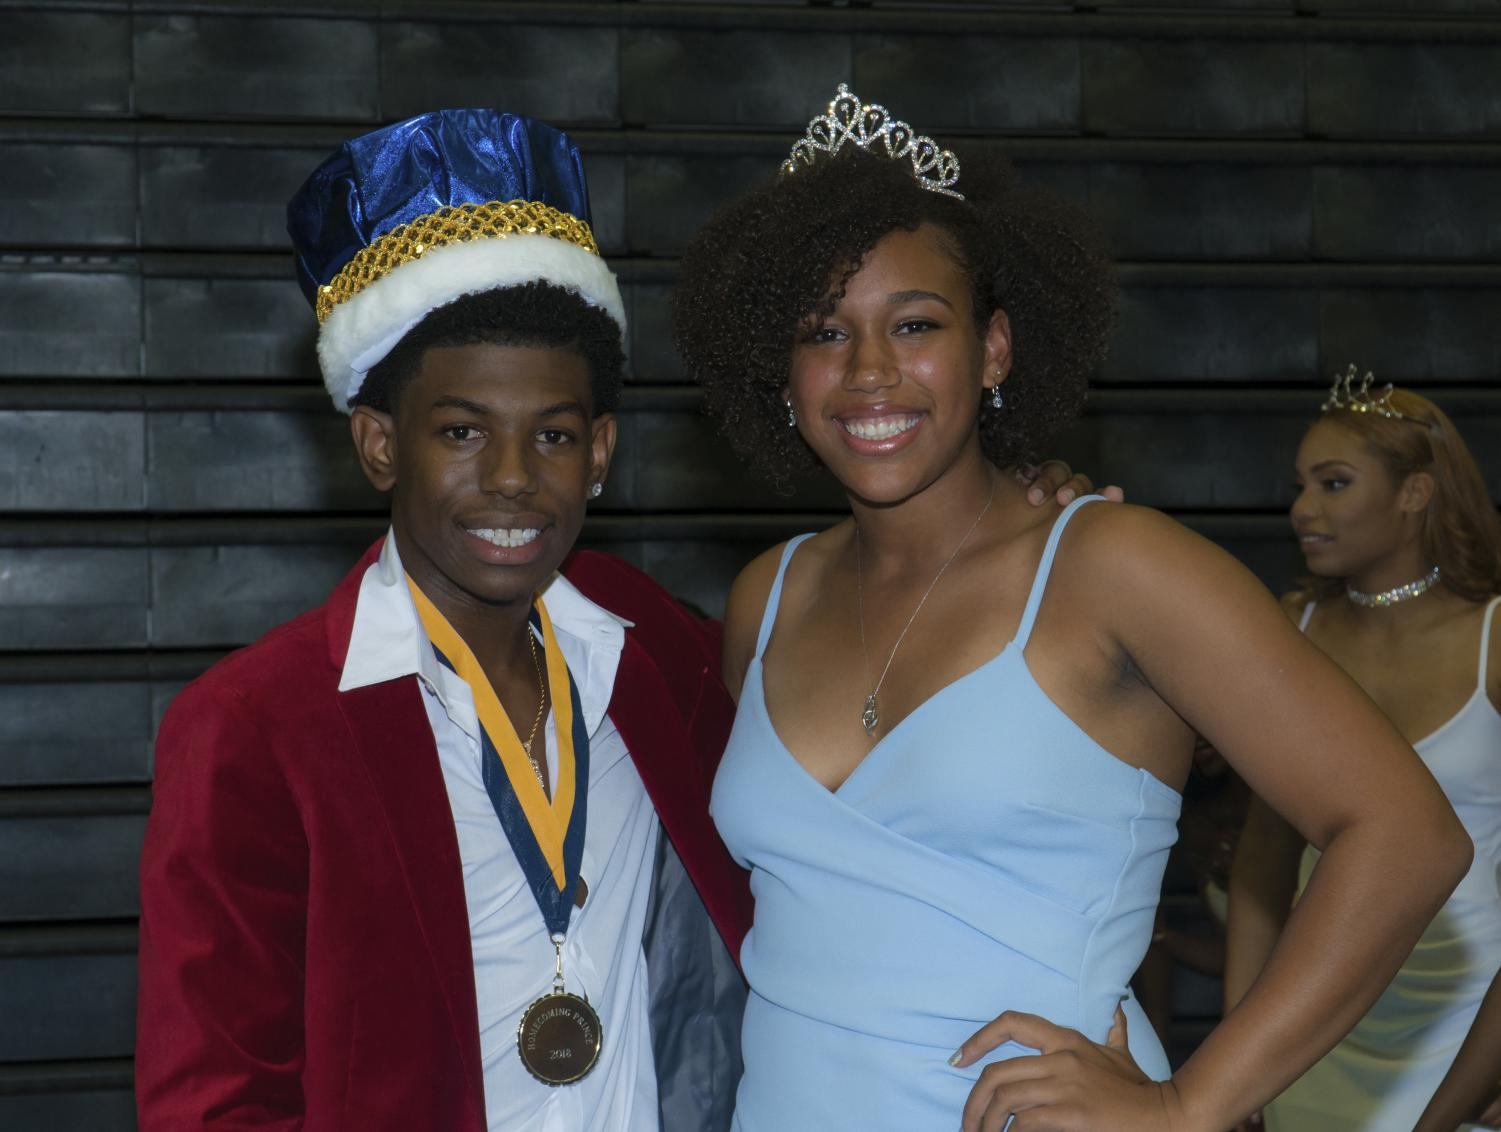 Homecoming+king+and+queen%21